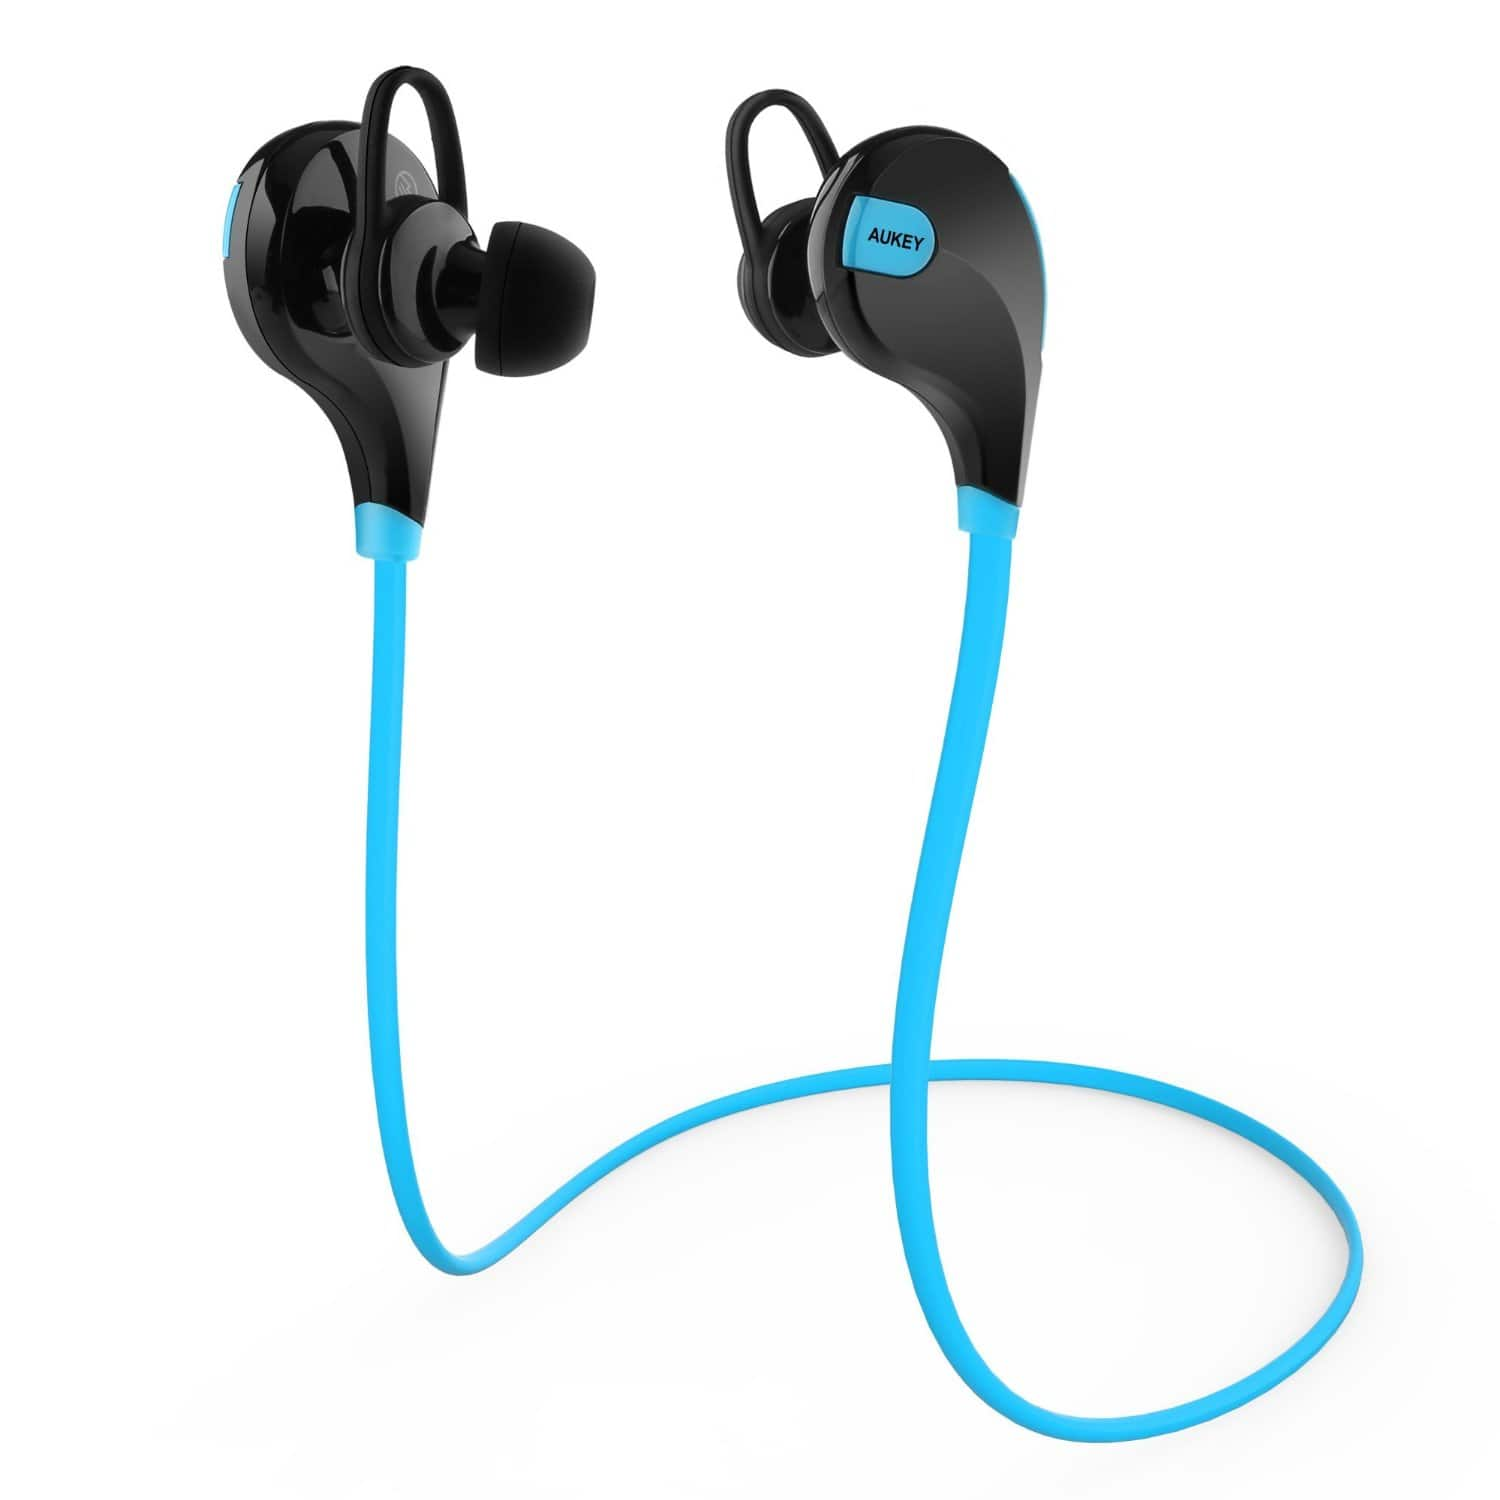 Aukey Wireless Bluetooth 4.1 Sports Headphones w/ Mic  $10